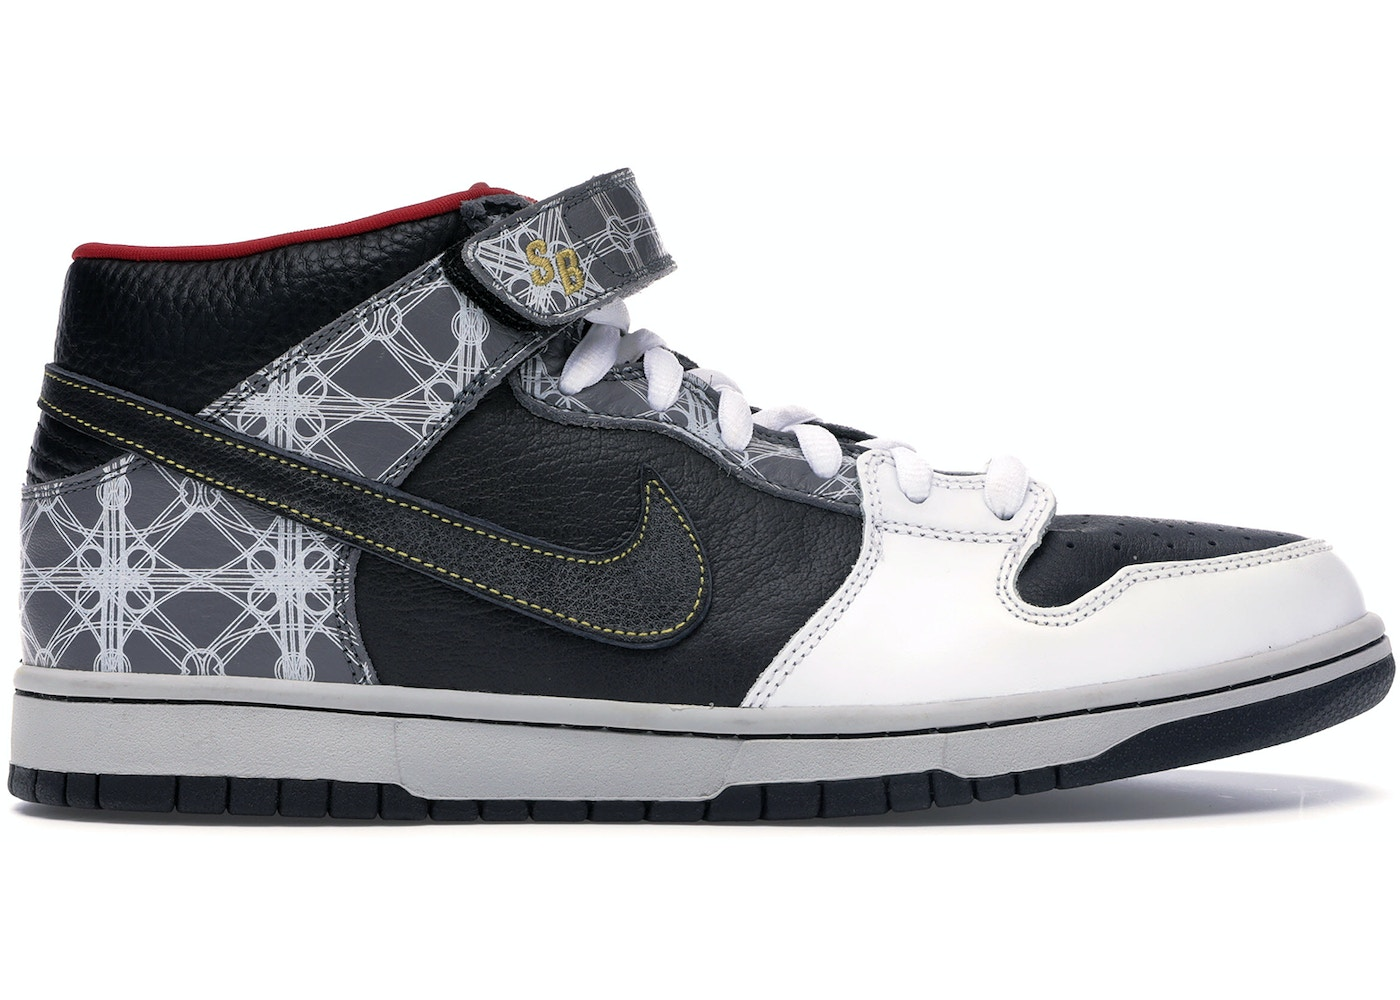 new concept 4fa87 6203b Buy Nike SB SB Dunk Mid Shoes & Deadstock Sneakers